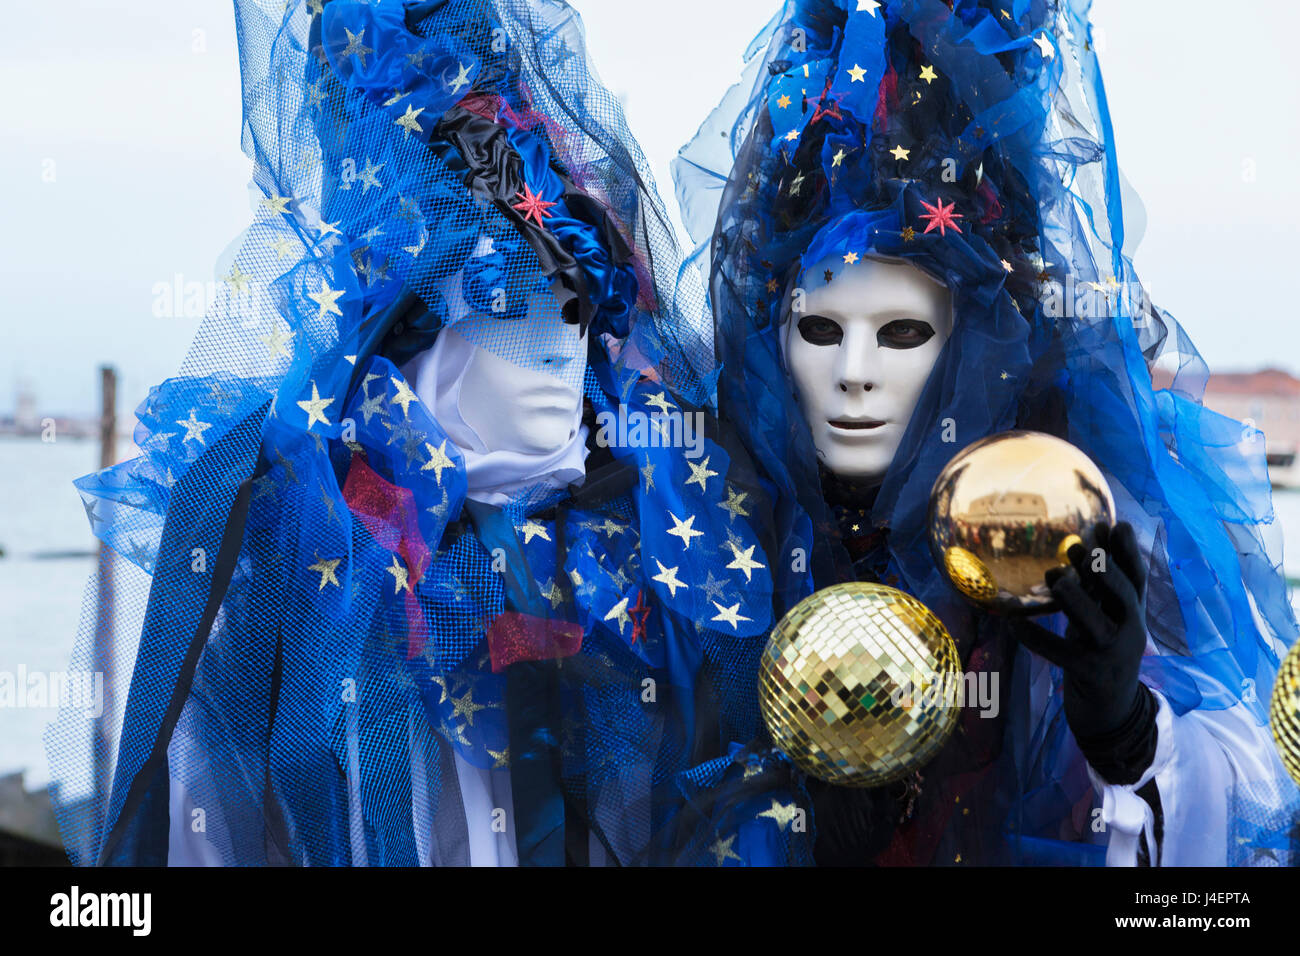 Colourful masks and costumes of the Carnival of Venice, famous festival worldwide, Venice, Veneto, Italy, Europe - Stock Image